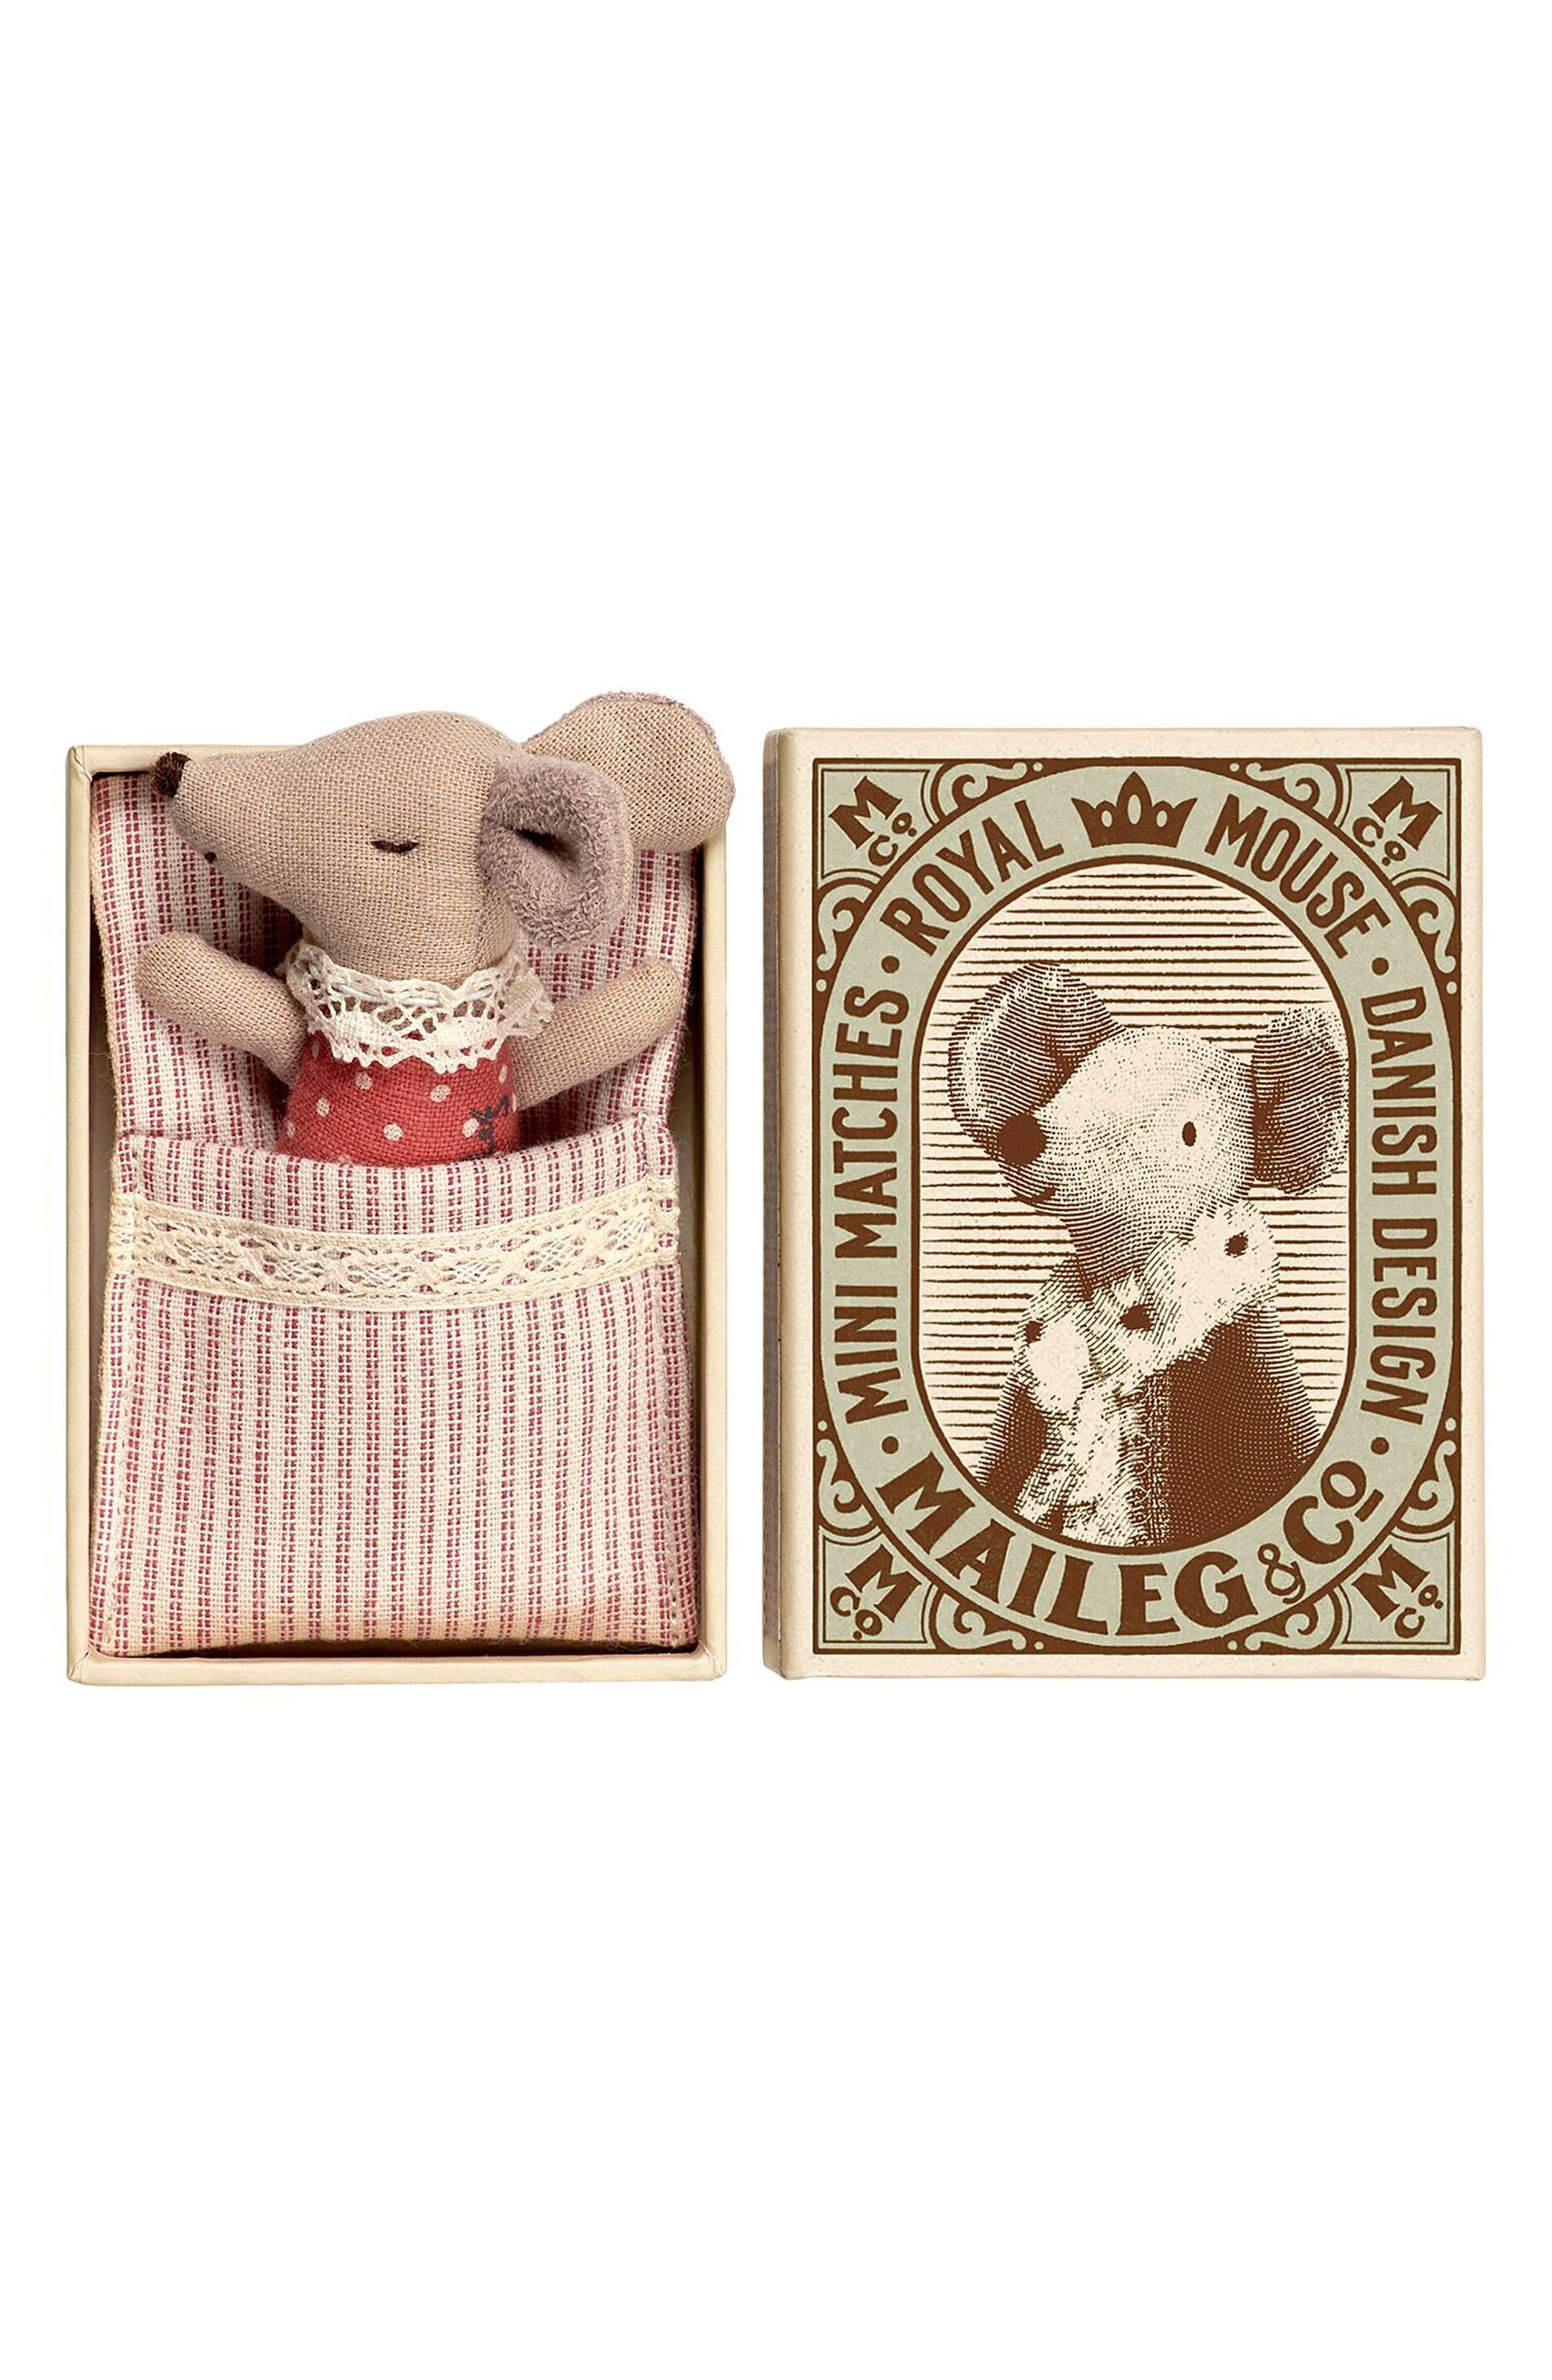 Sleepy-Wakey Baby Girl Toy Mouse in a Box,                             Main thumbnail 1, color,                             652